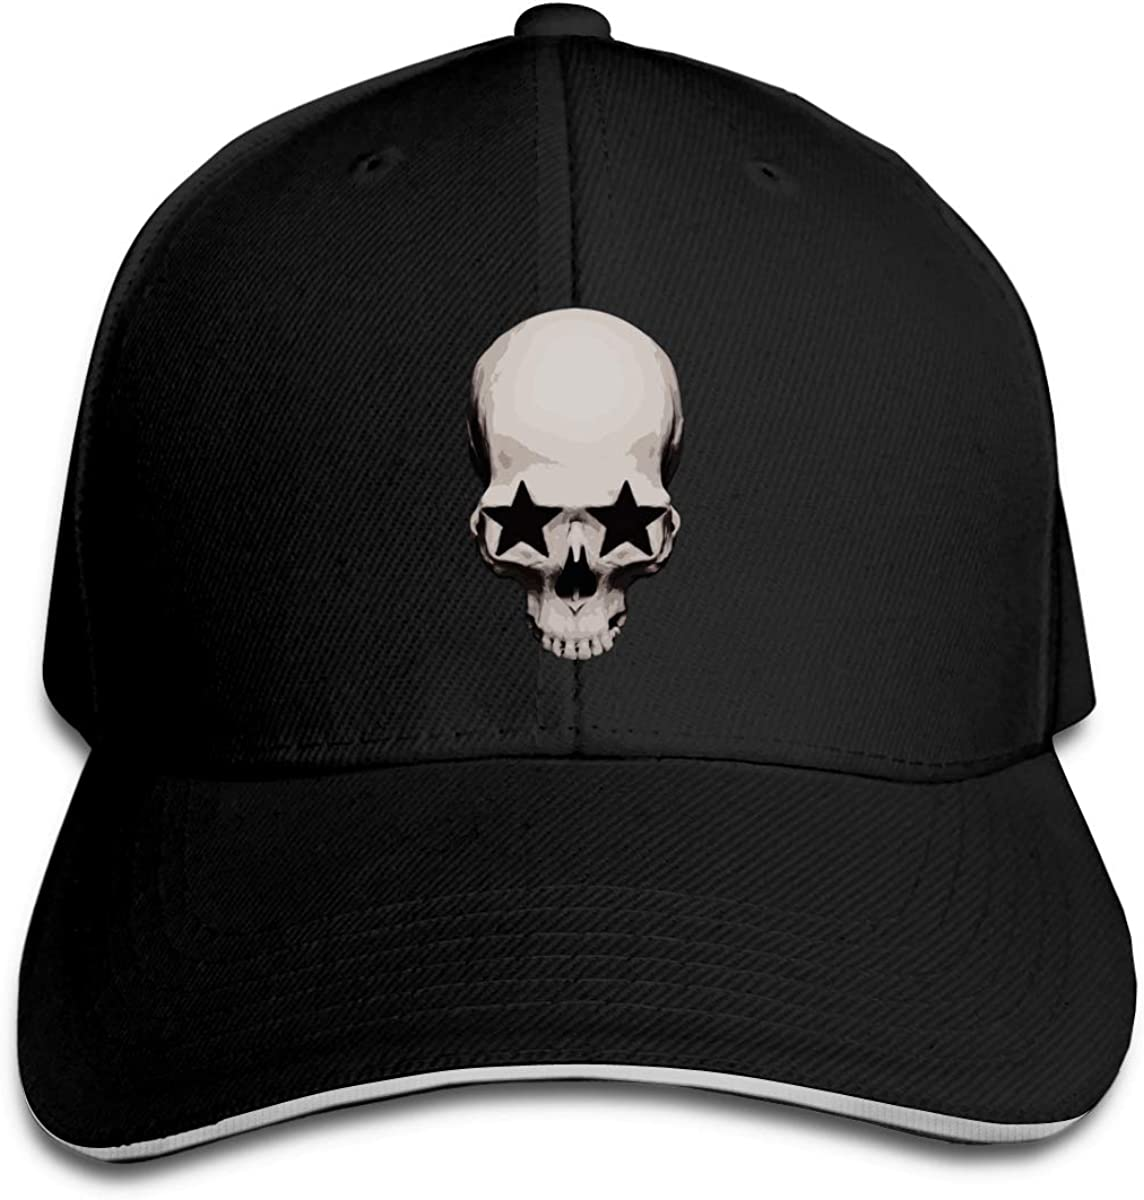 Skull with Star Eyes Classic Adjustable Cotton Baseball Caps Trucker Driver Hat Outdoor Cap Black